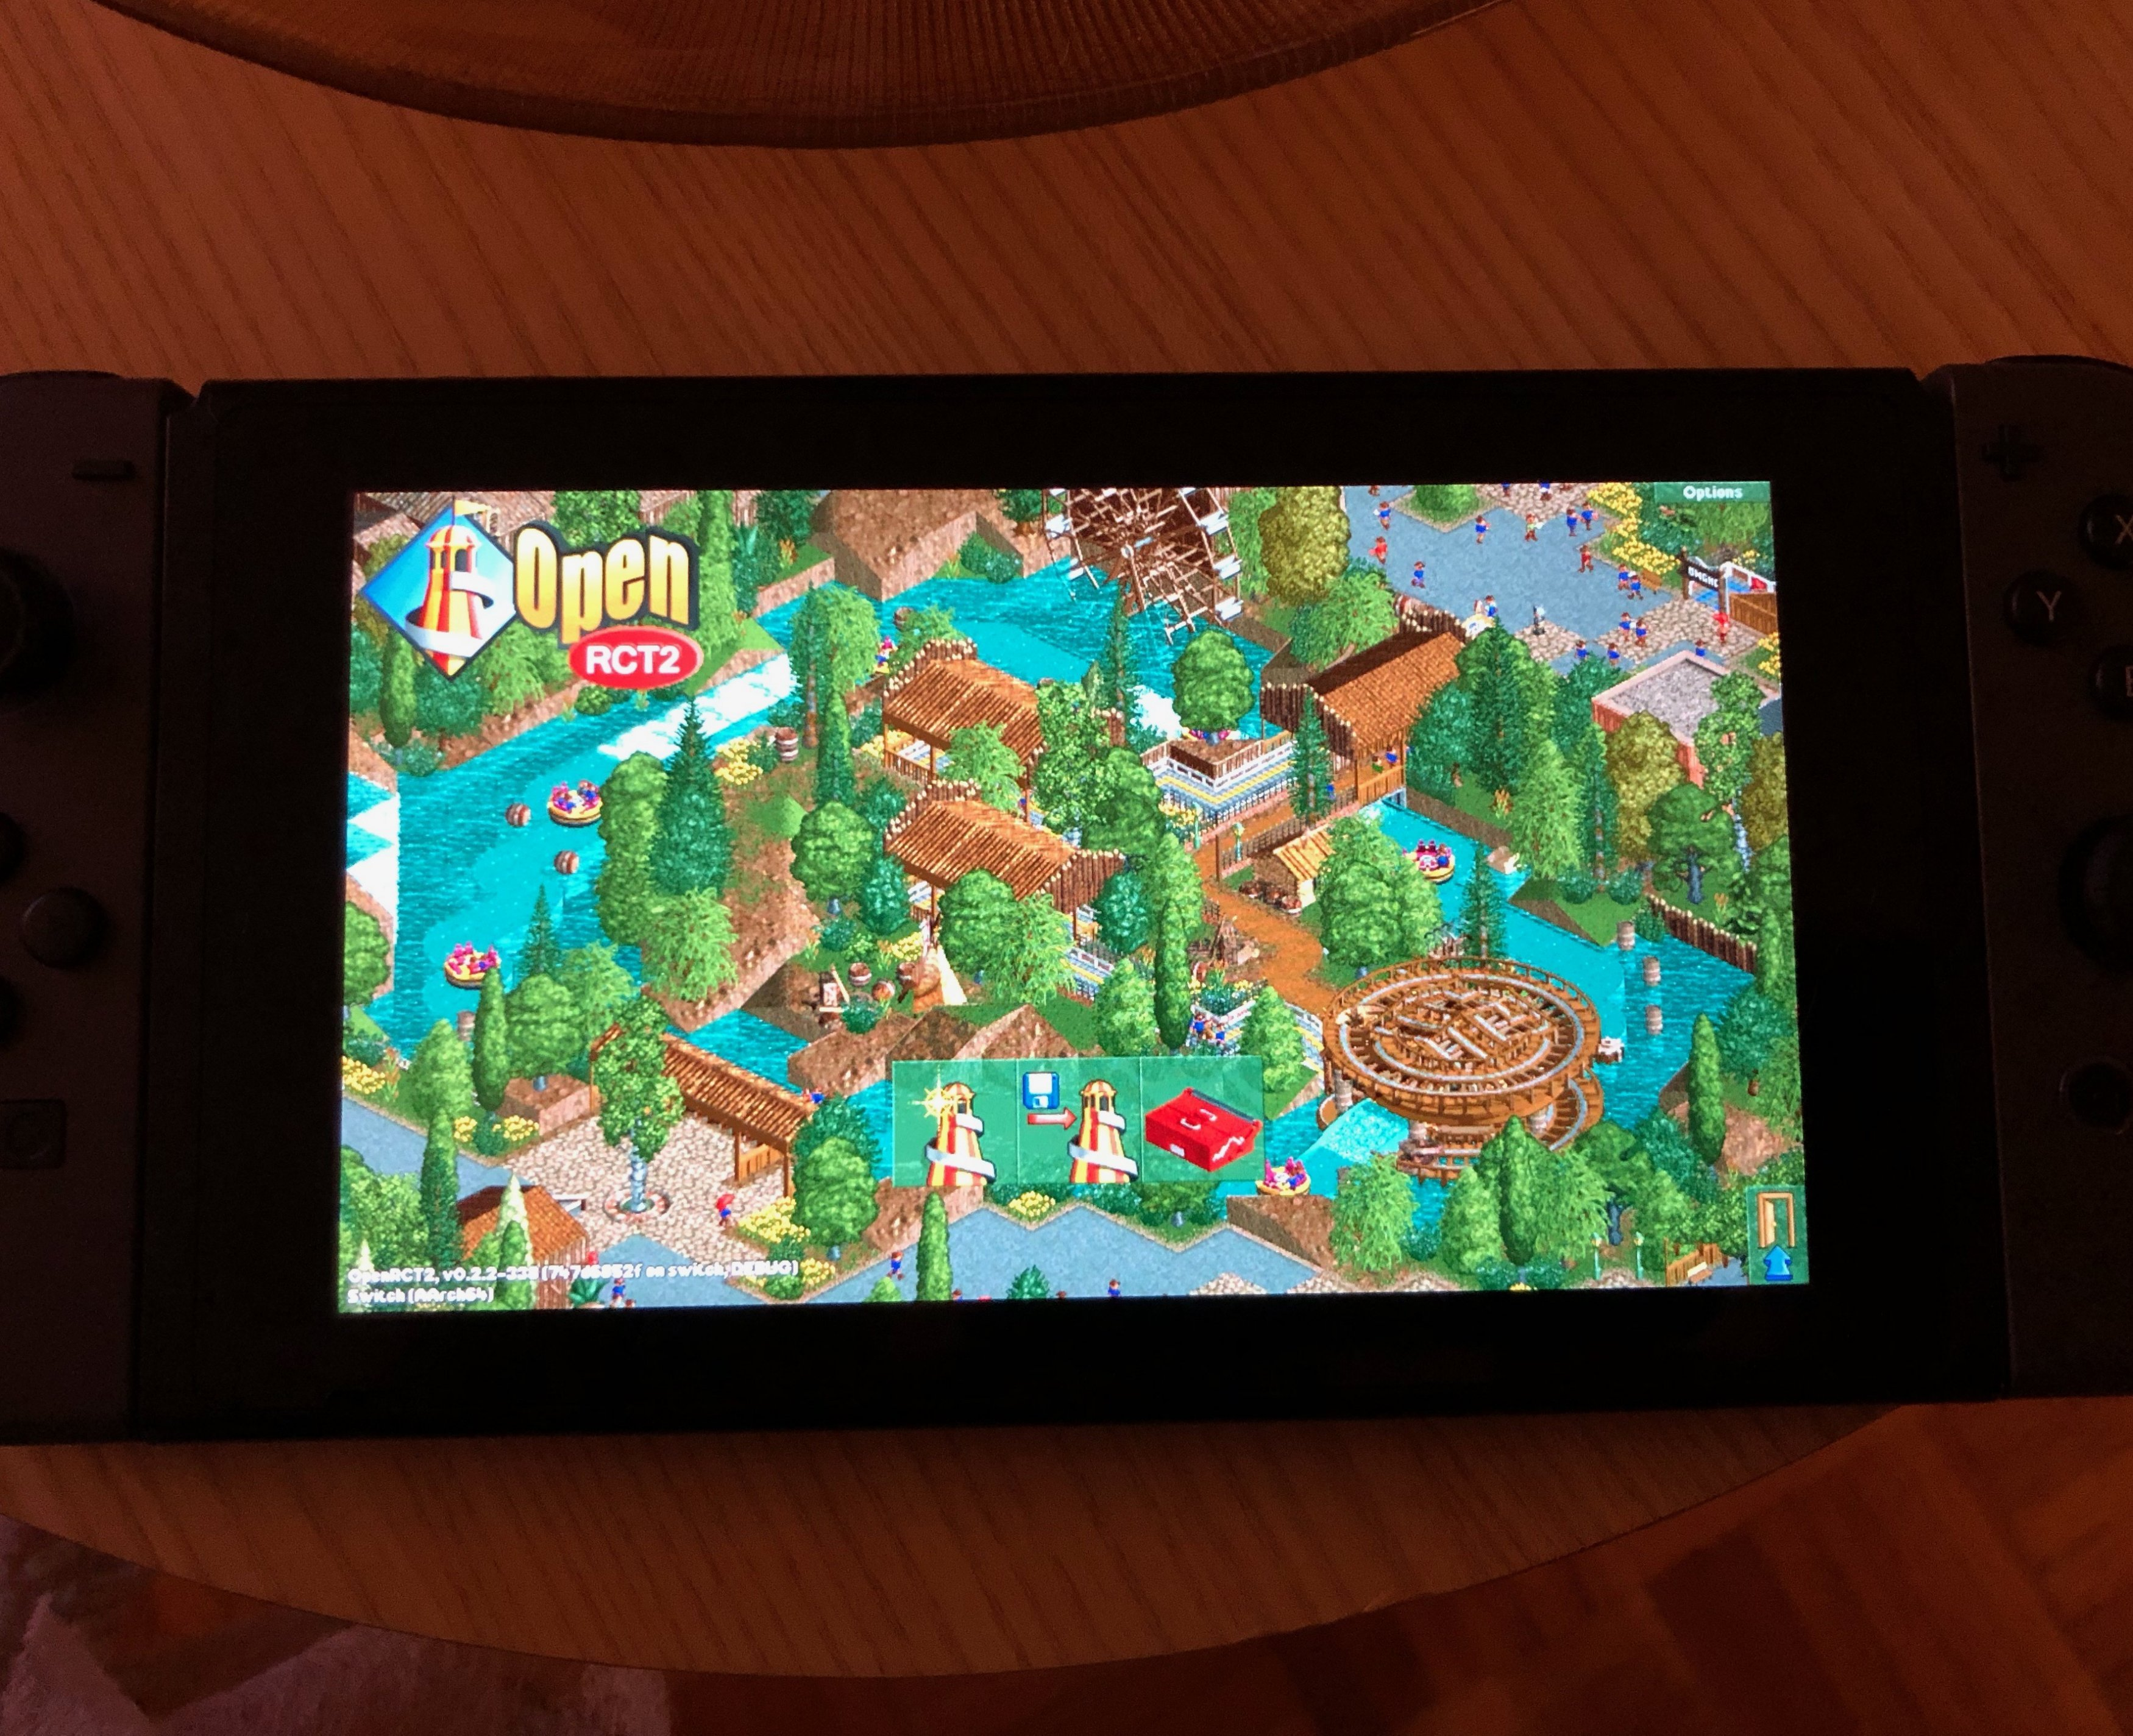 RELEASE - [Release] OpenRCT2 (RollerCoaster Tycoon 2) for Switch